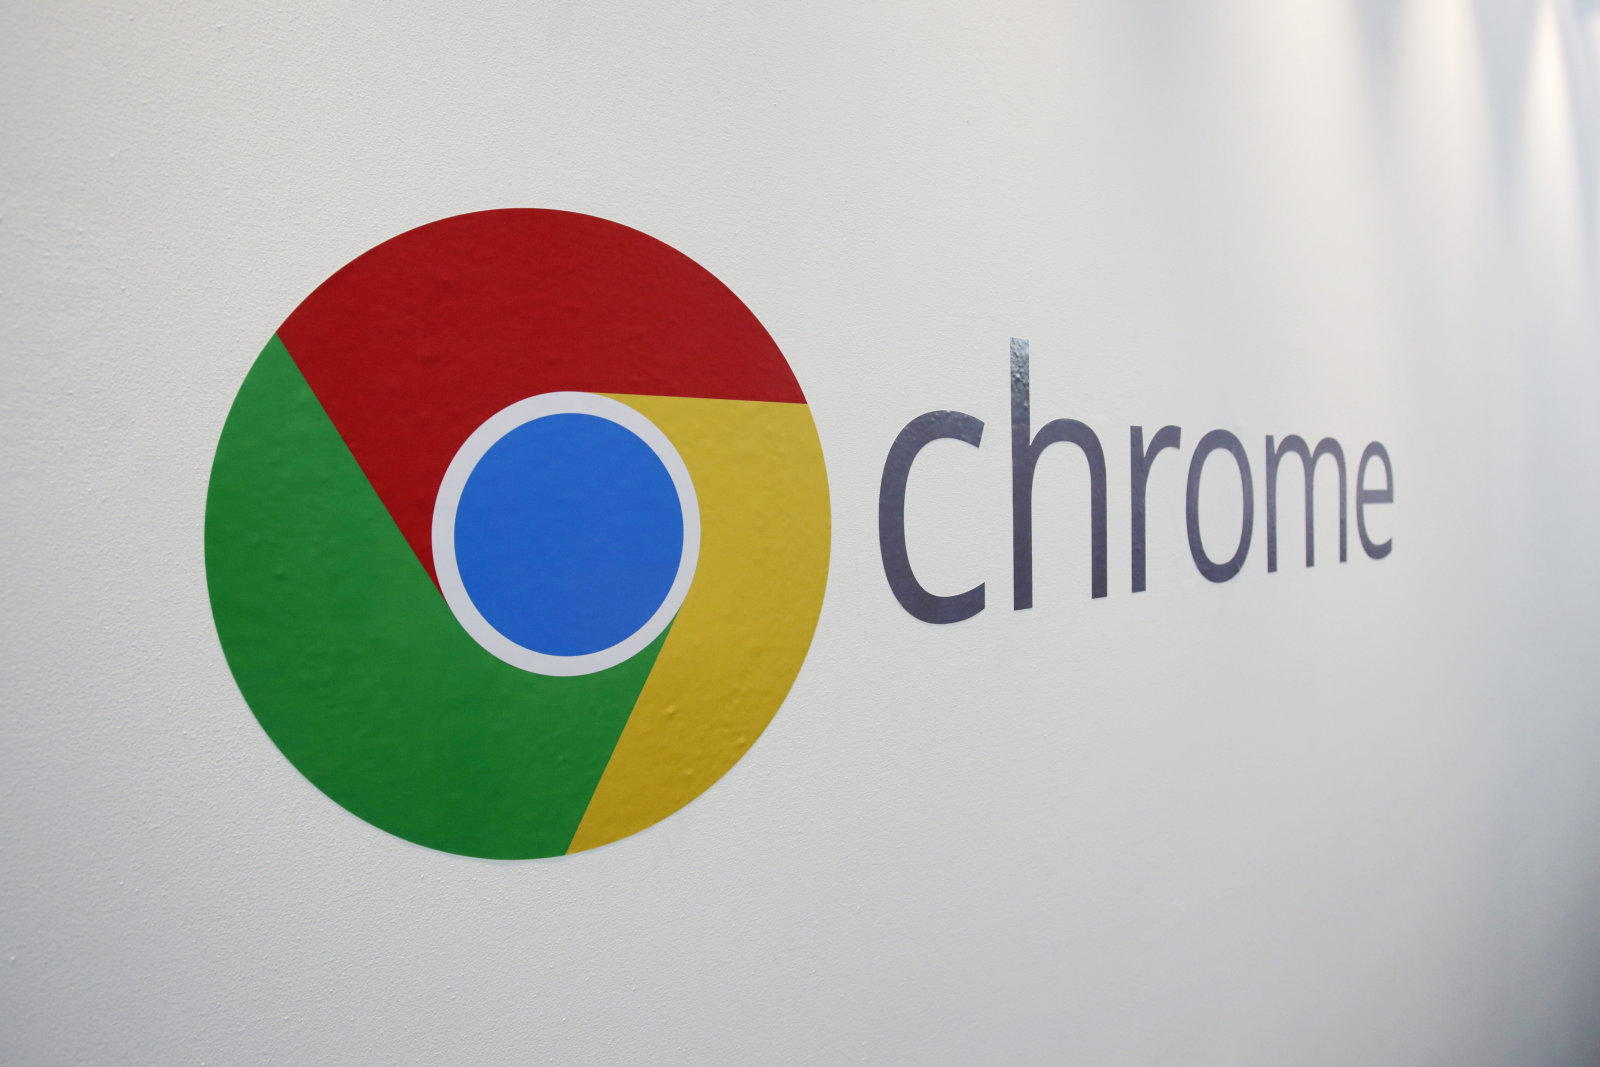 Google Chrome will begin blocking Flash in favor of HTML5